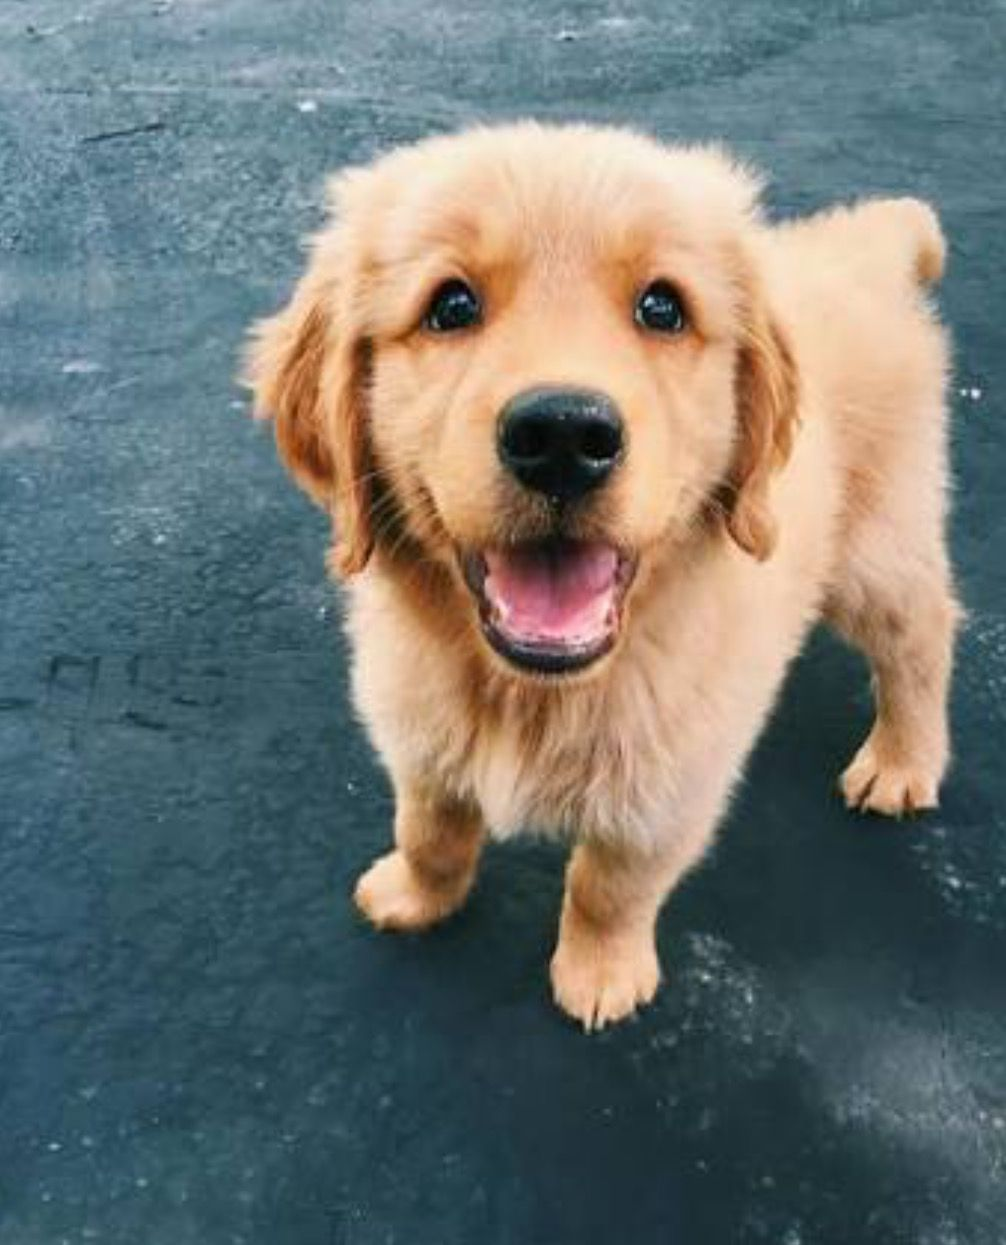 A Very Happy Puppy Follow Me For More Isabella Puppies Cute Animals Retriever Puppy